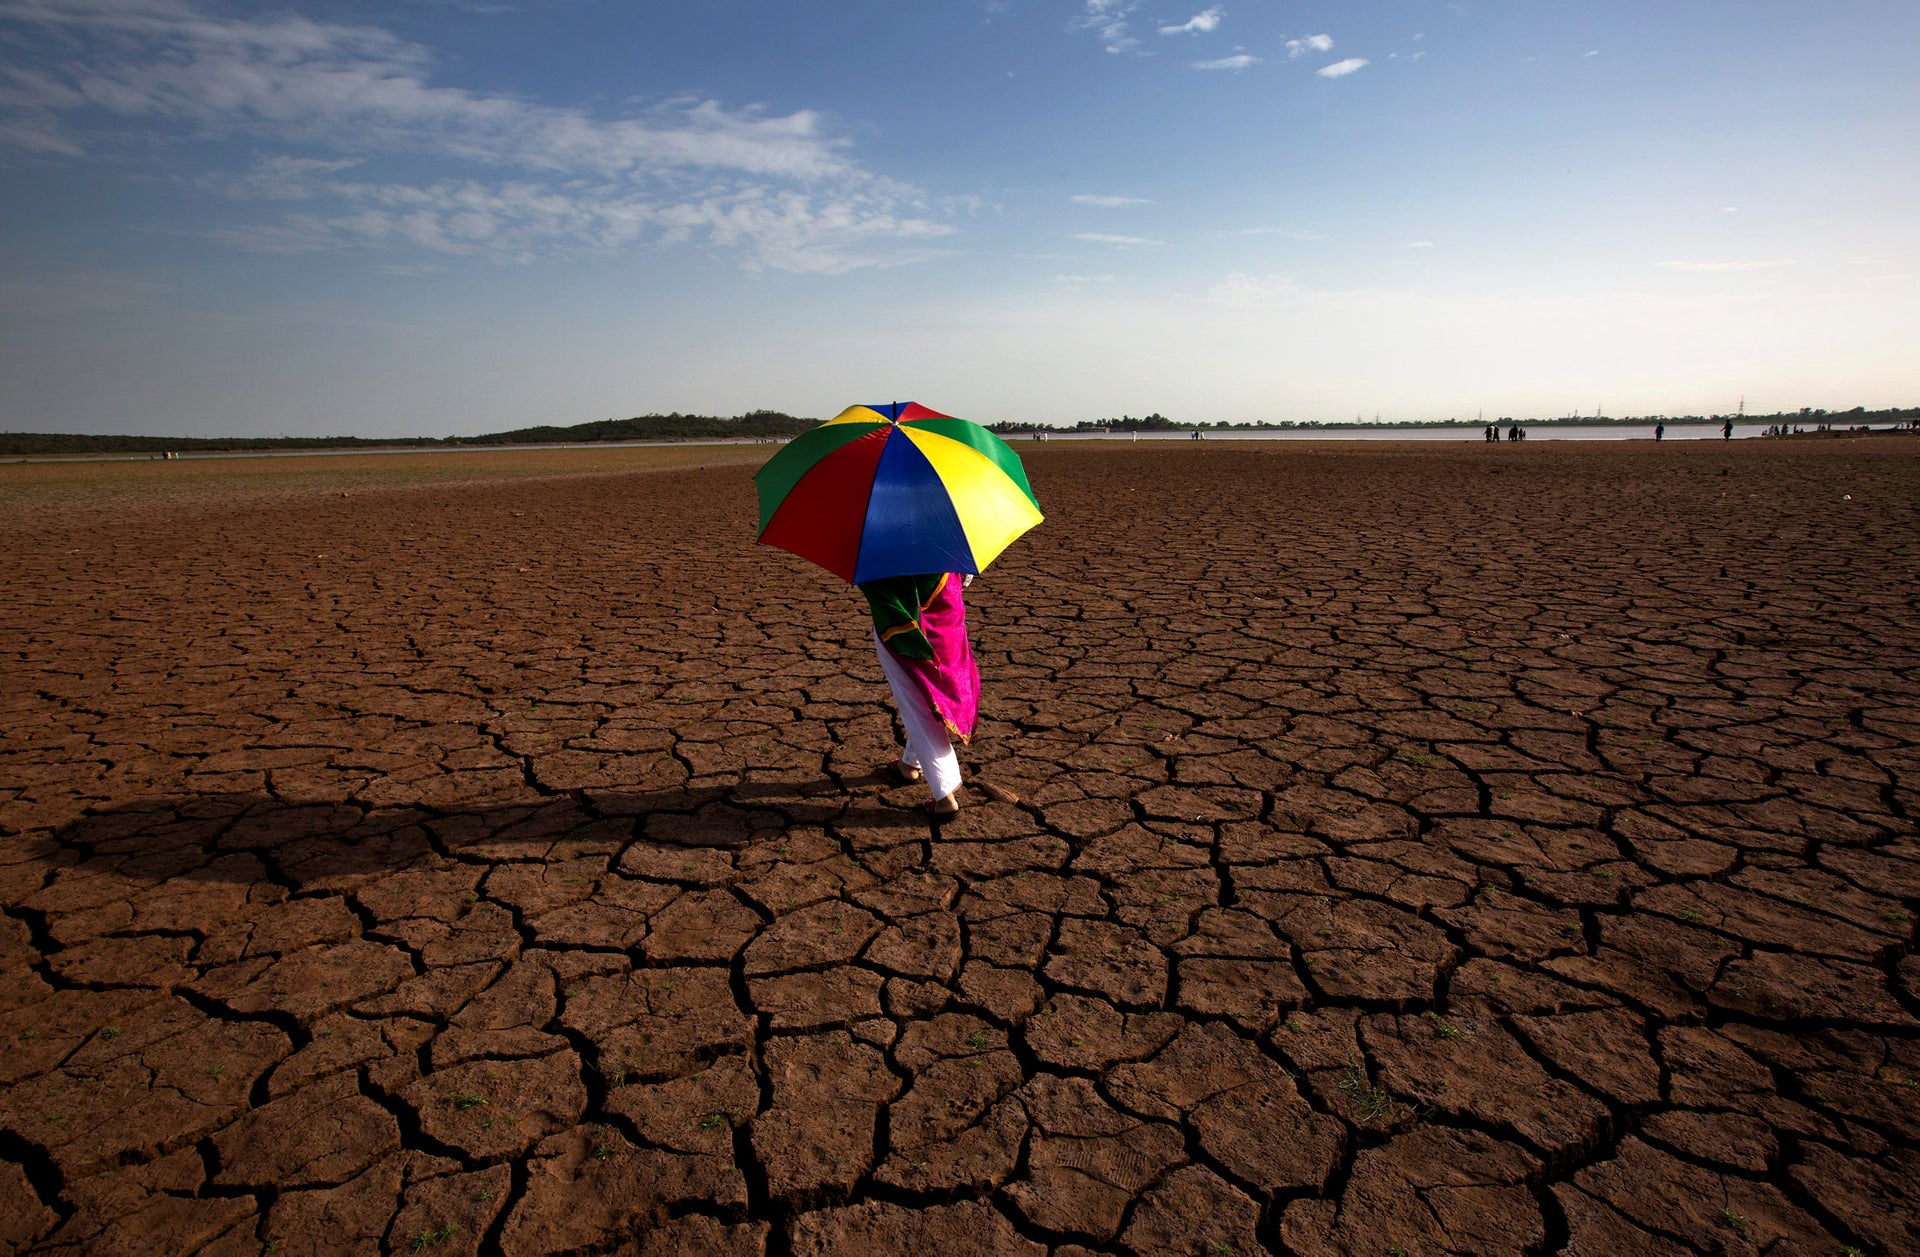 A Pakistani woman walks on a dry bank that provides water to Islamabad and Rawalpindi cities, at Rawal dam in Islamabad, Pakistan, Friday, June 22, 2018. The water level in dams and rivers are low due to dry and hot weather causing water and energy shortage to civilians.